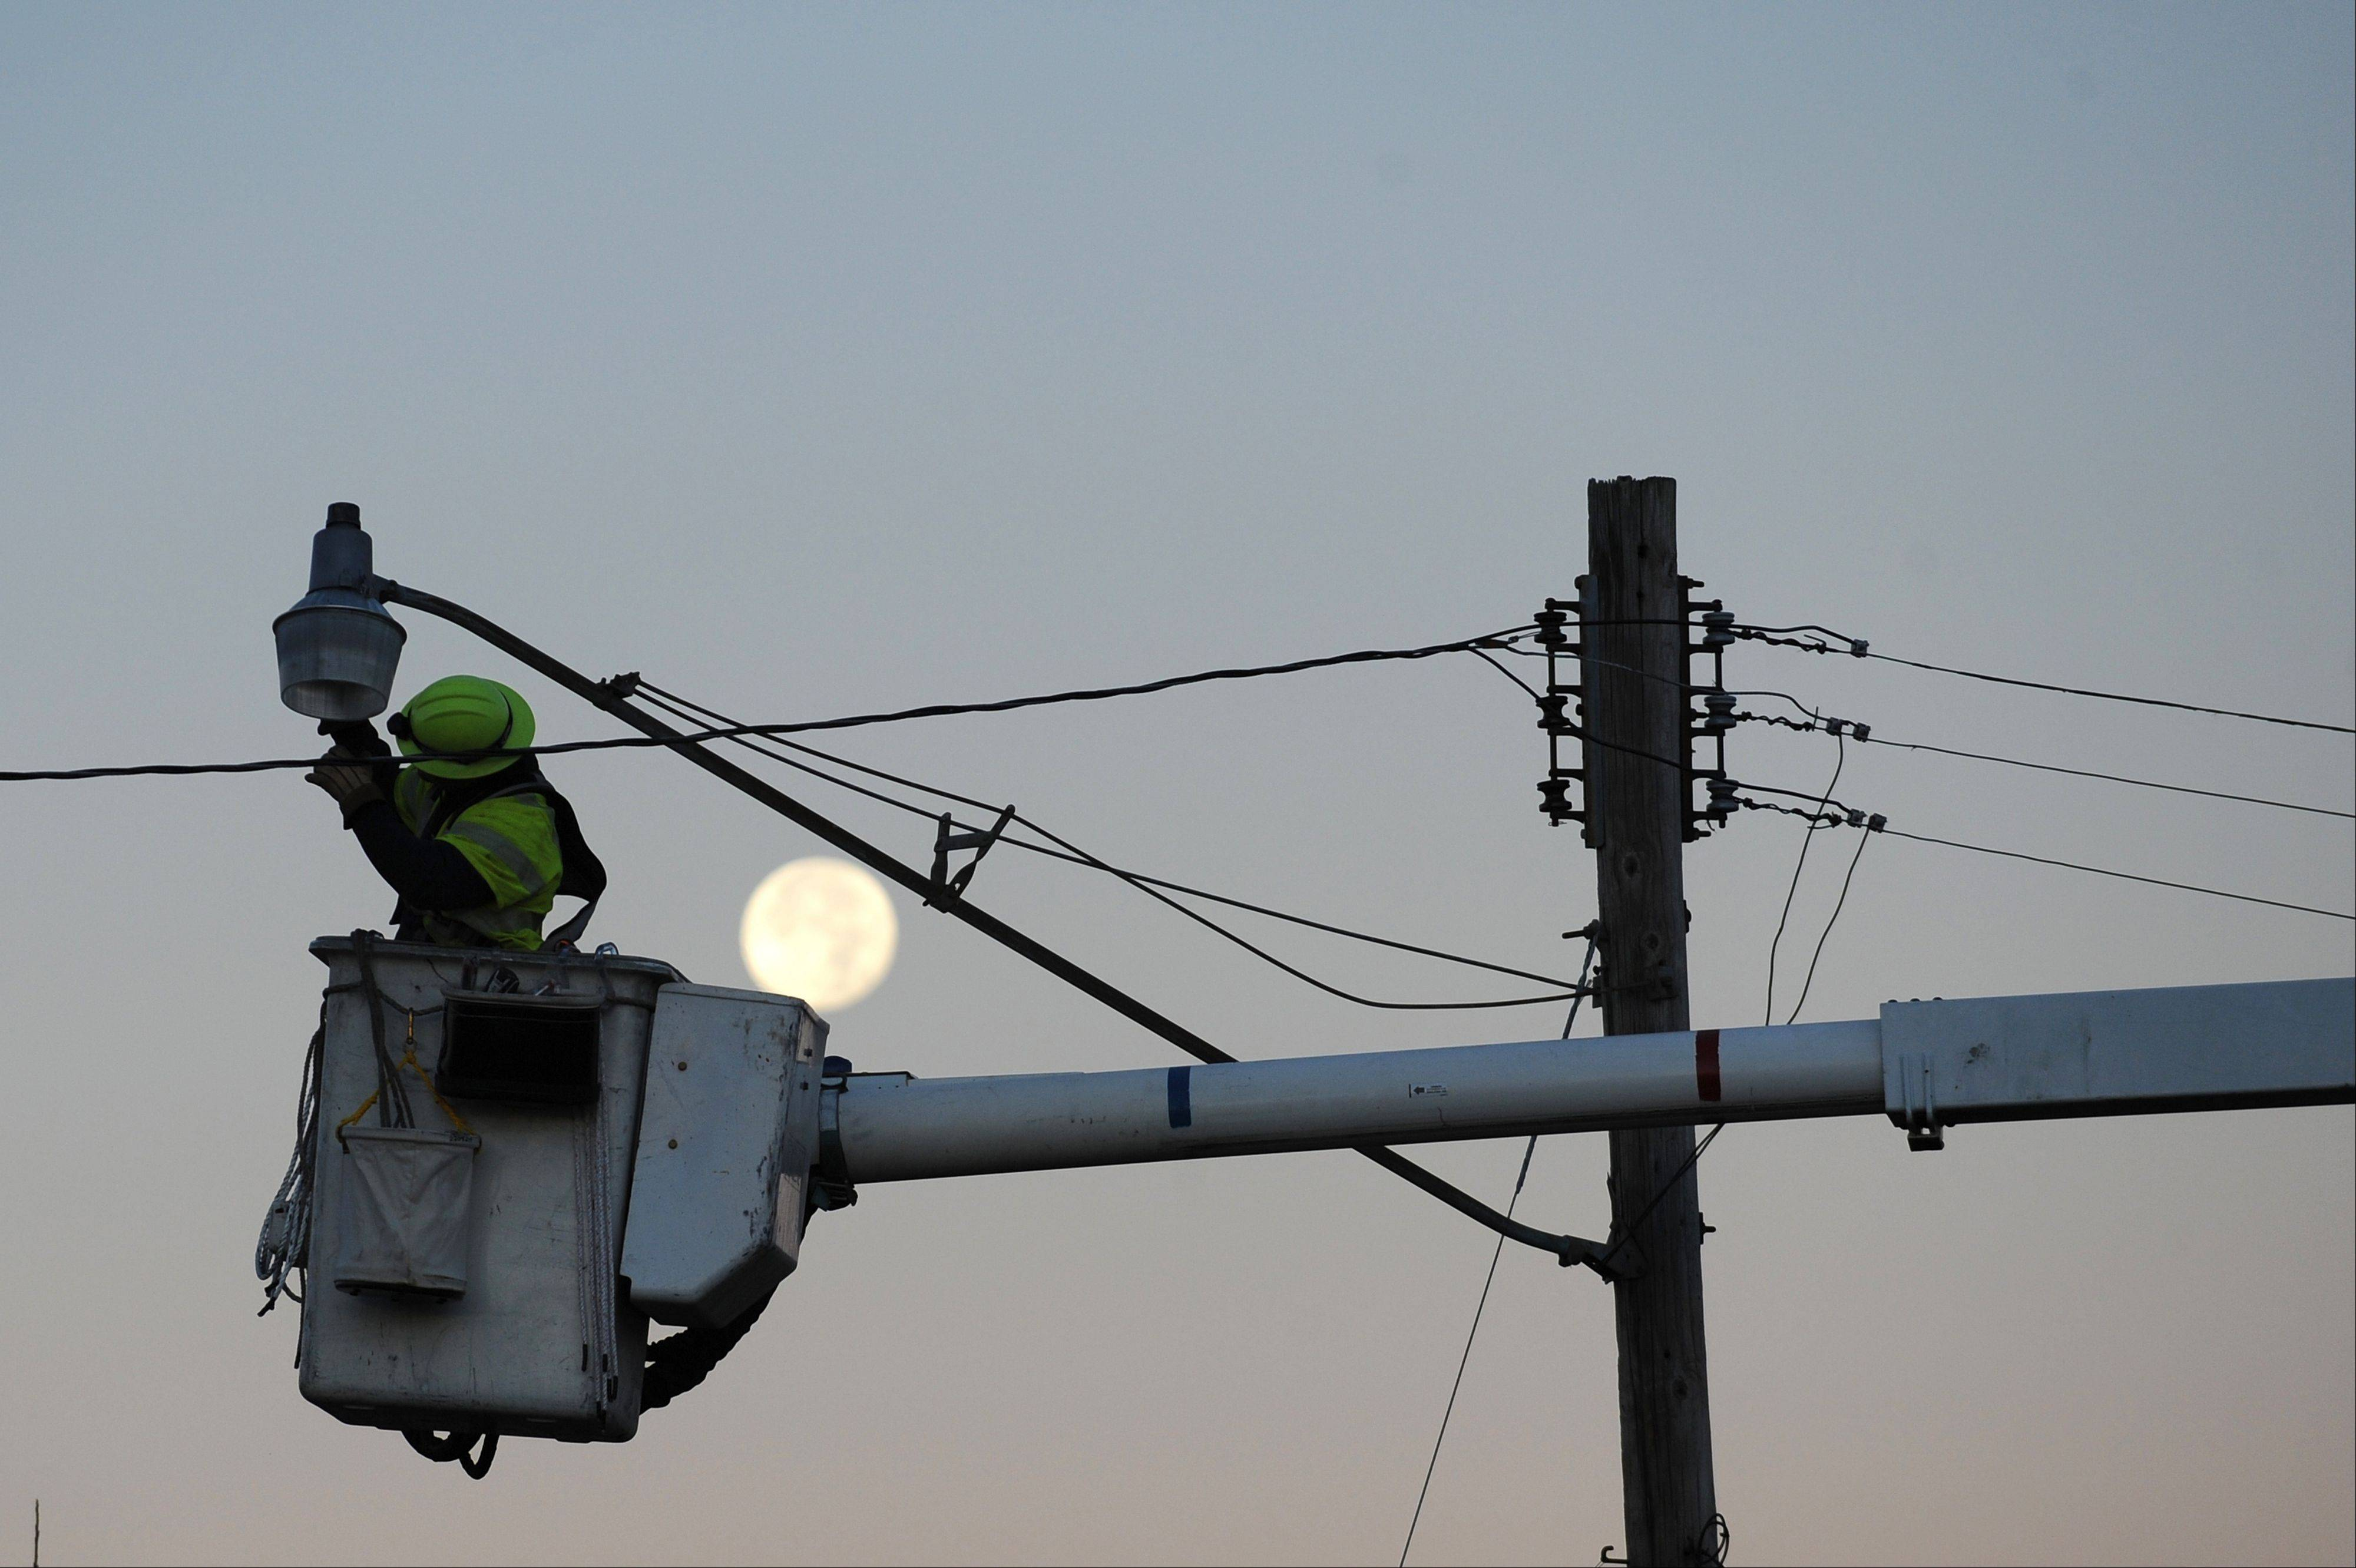 The moon is seen behind a utility worker repairing a city street light in Brookport, Ill., Monday, Nov. 18, 2013. Dozens of tornadoes and intense thunderstorms swept across the U.S. Midwest on Sunday, unleashing powerful winds that flattened entire neighborhoods, flipped over cars and uprooted trees.